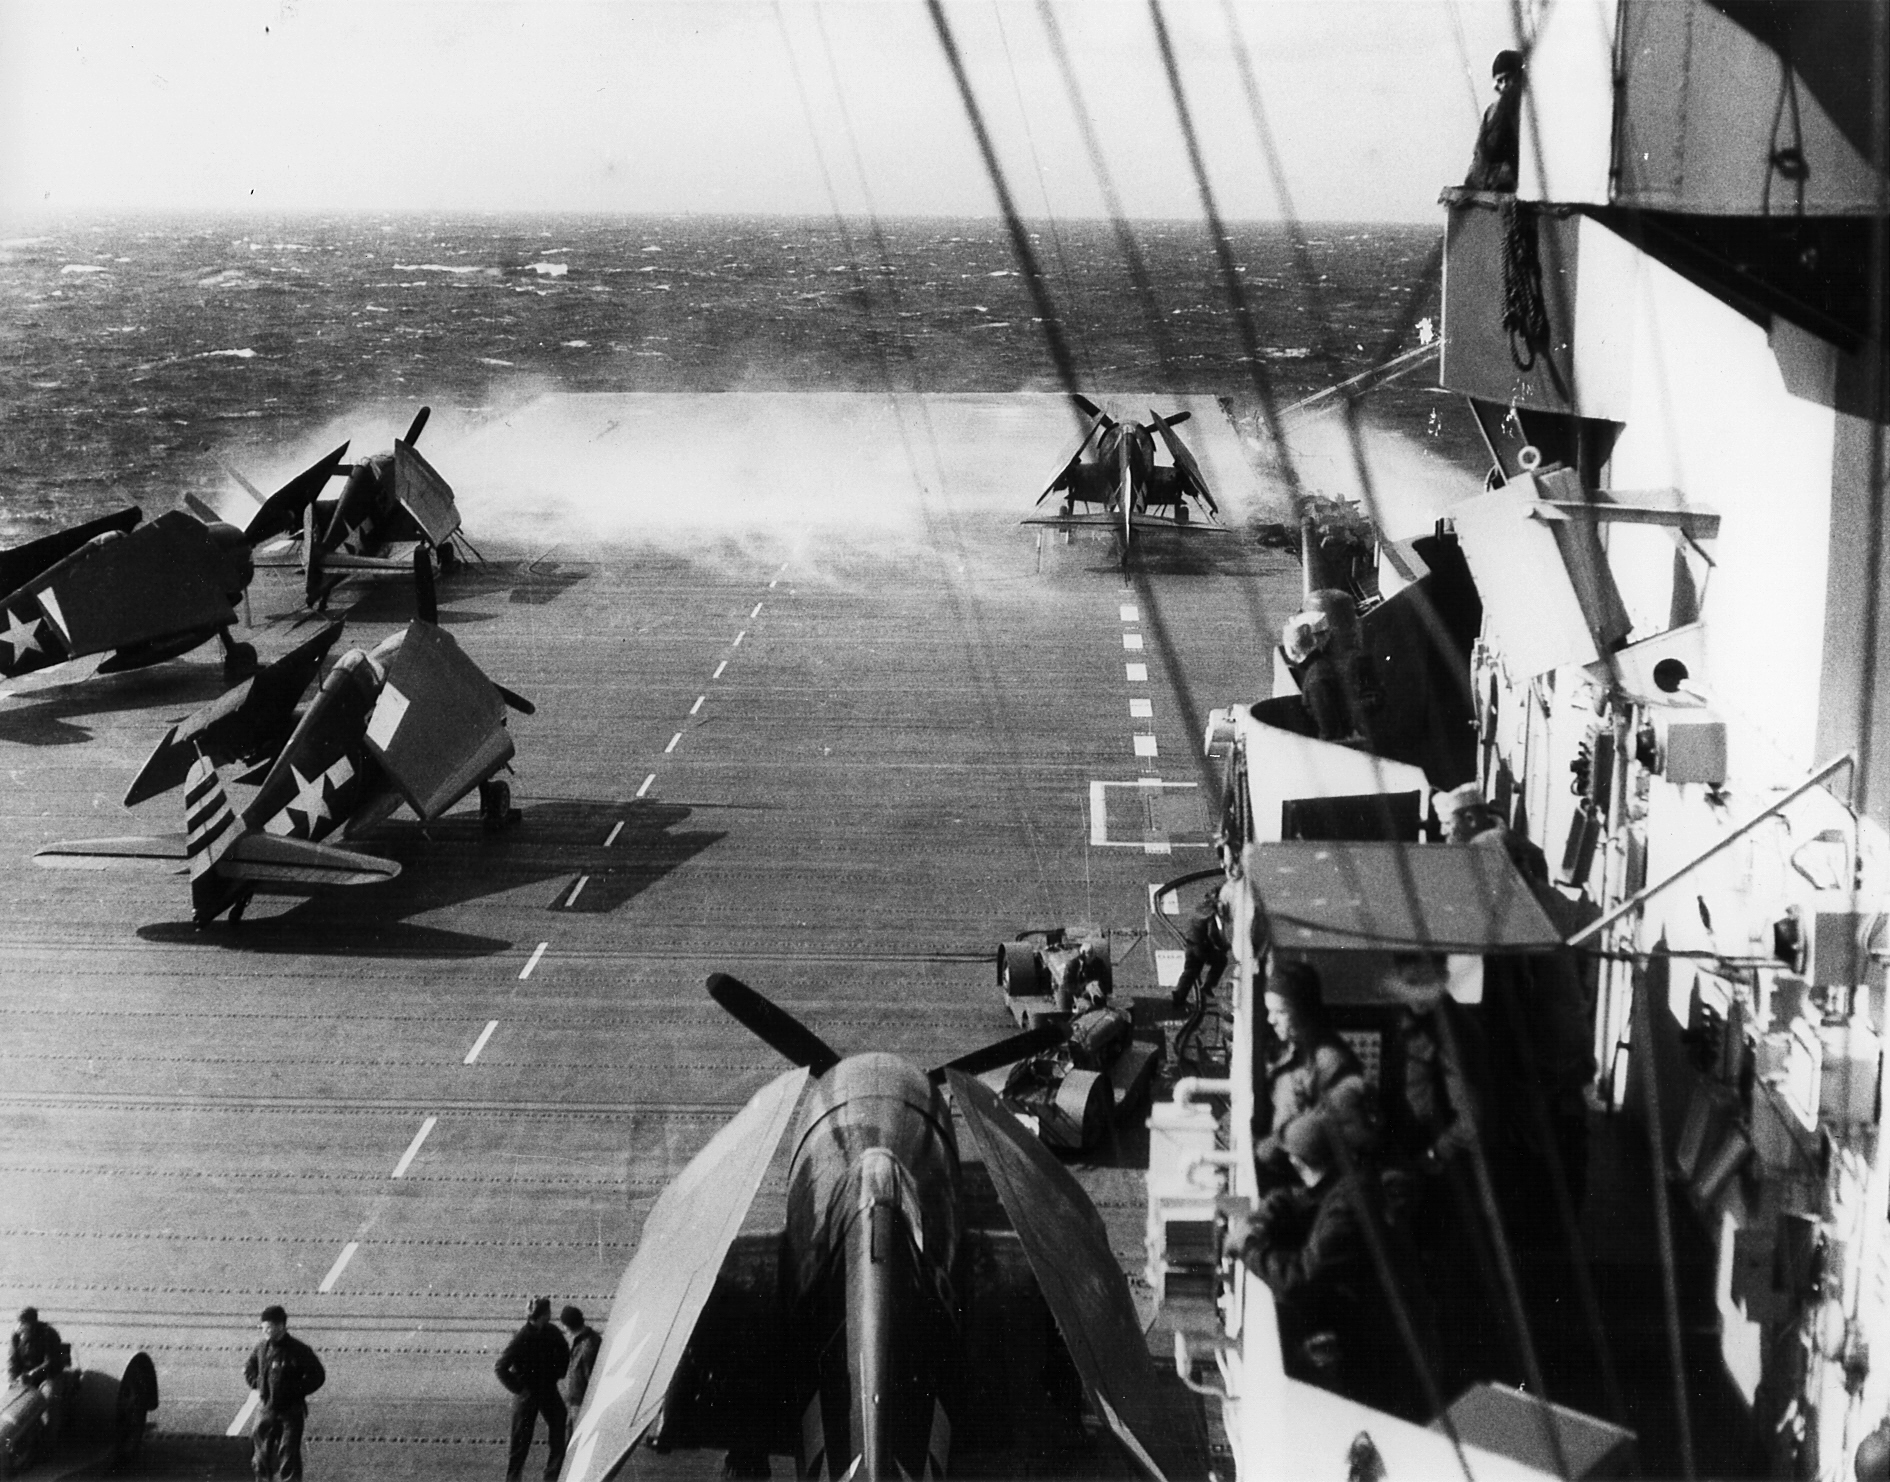 Grumman F6F 5 Hellcats VF 3 and VF 12 are on the deck CV 10 USS Yorktown off Iwo Jima D Day 01